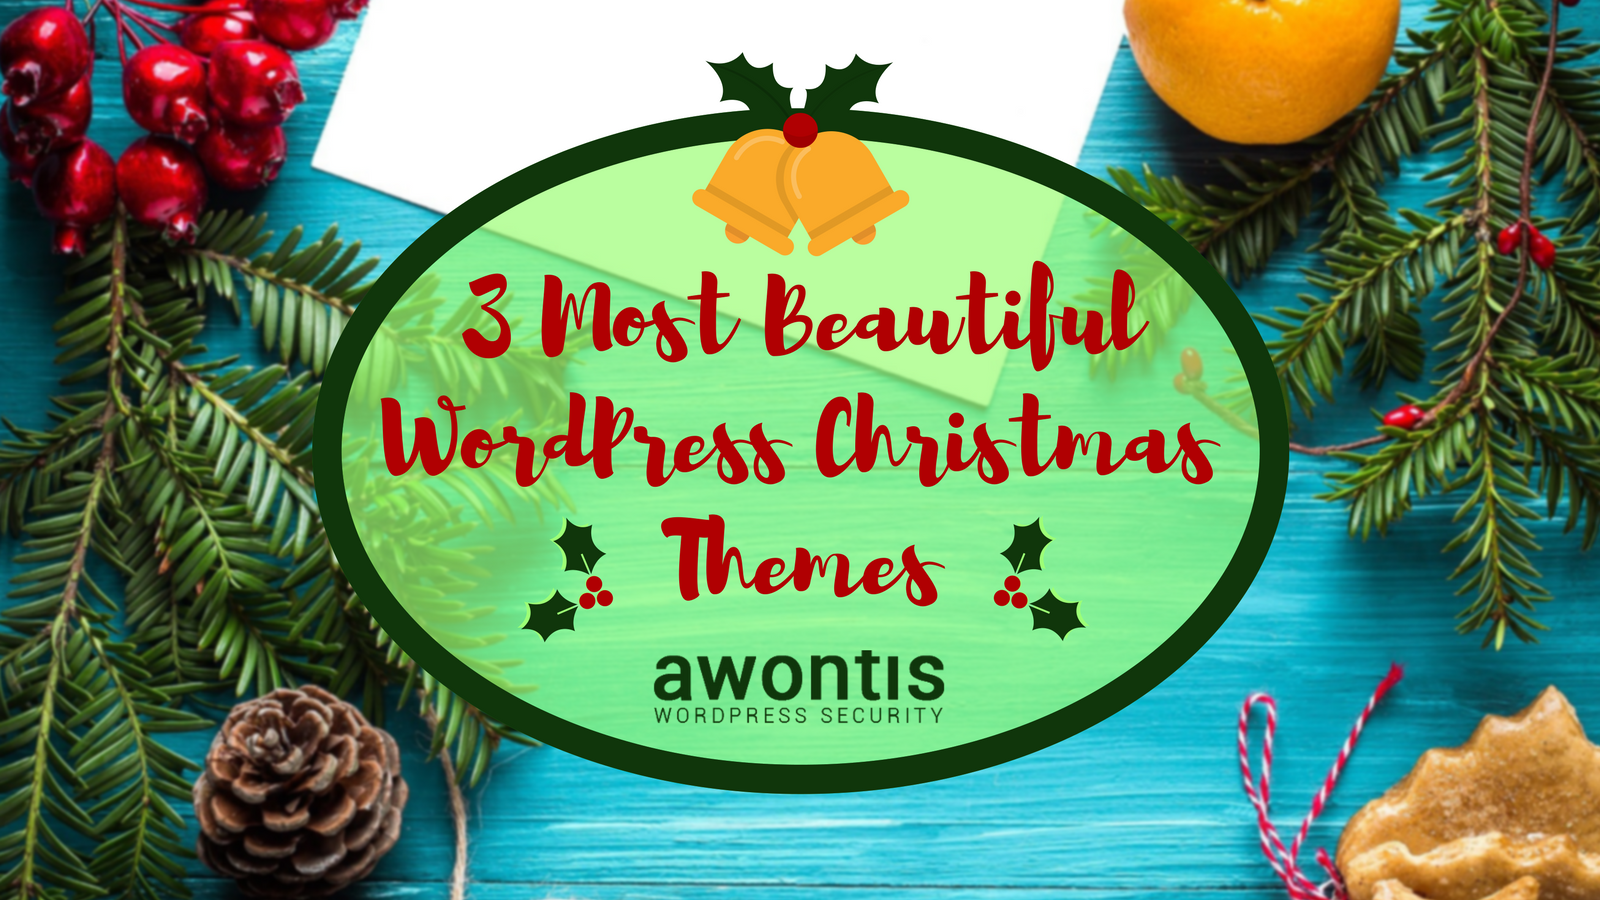 3 Most Beautiful WordPress Christmas Themes